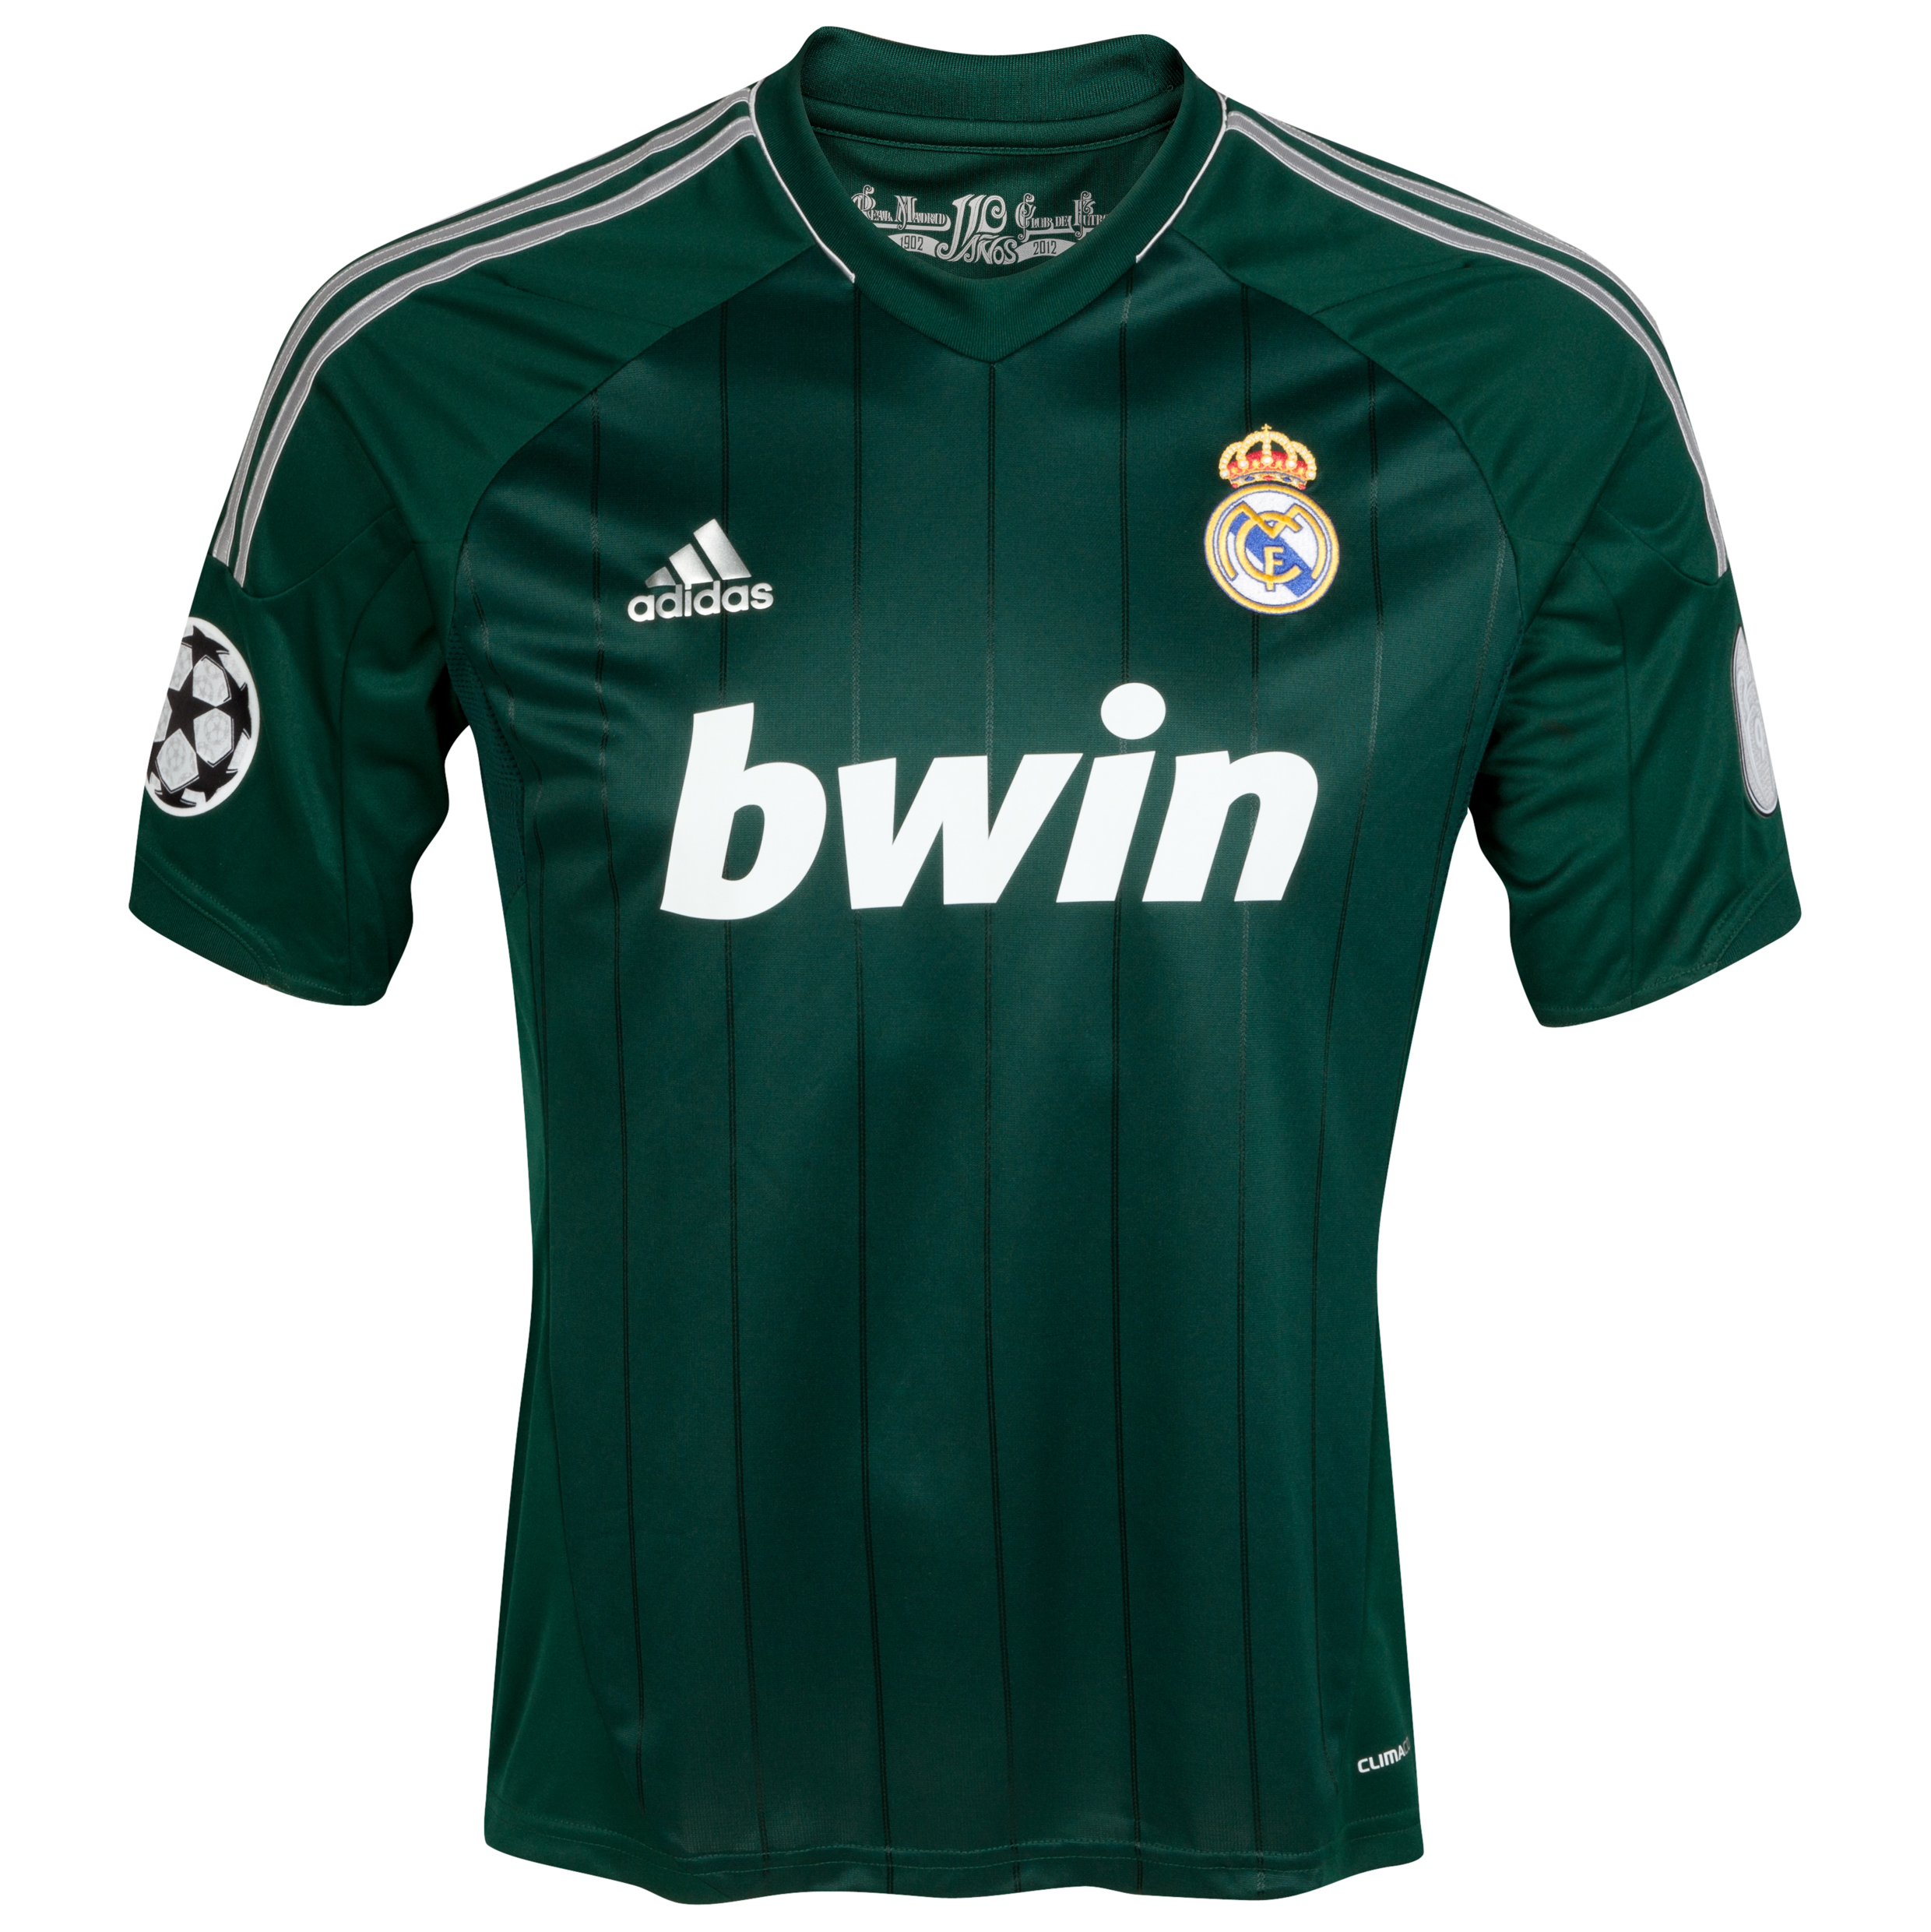 Buy Real Madrid UEFA Champions League Third Kit 2012/13